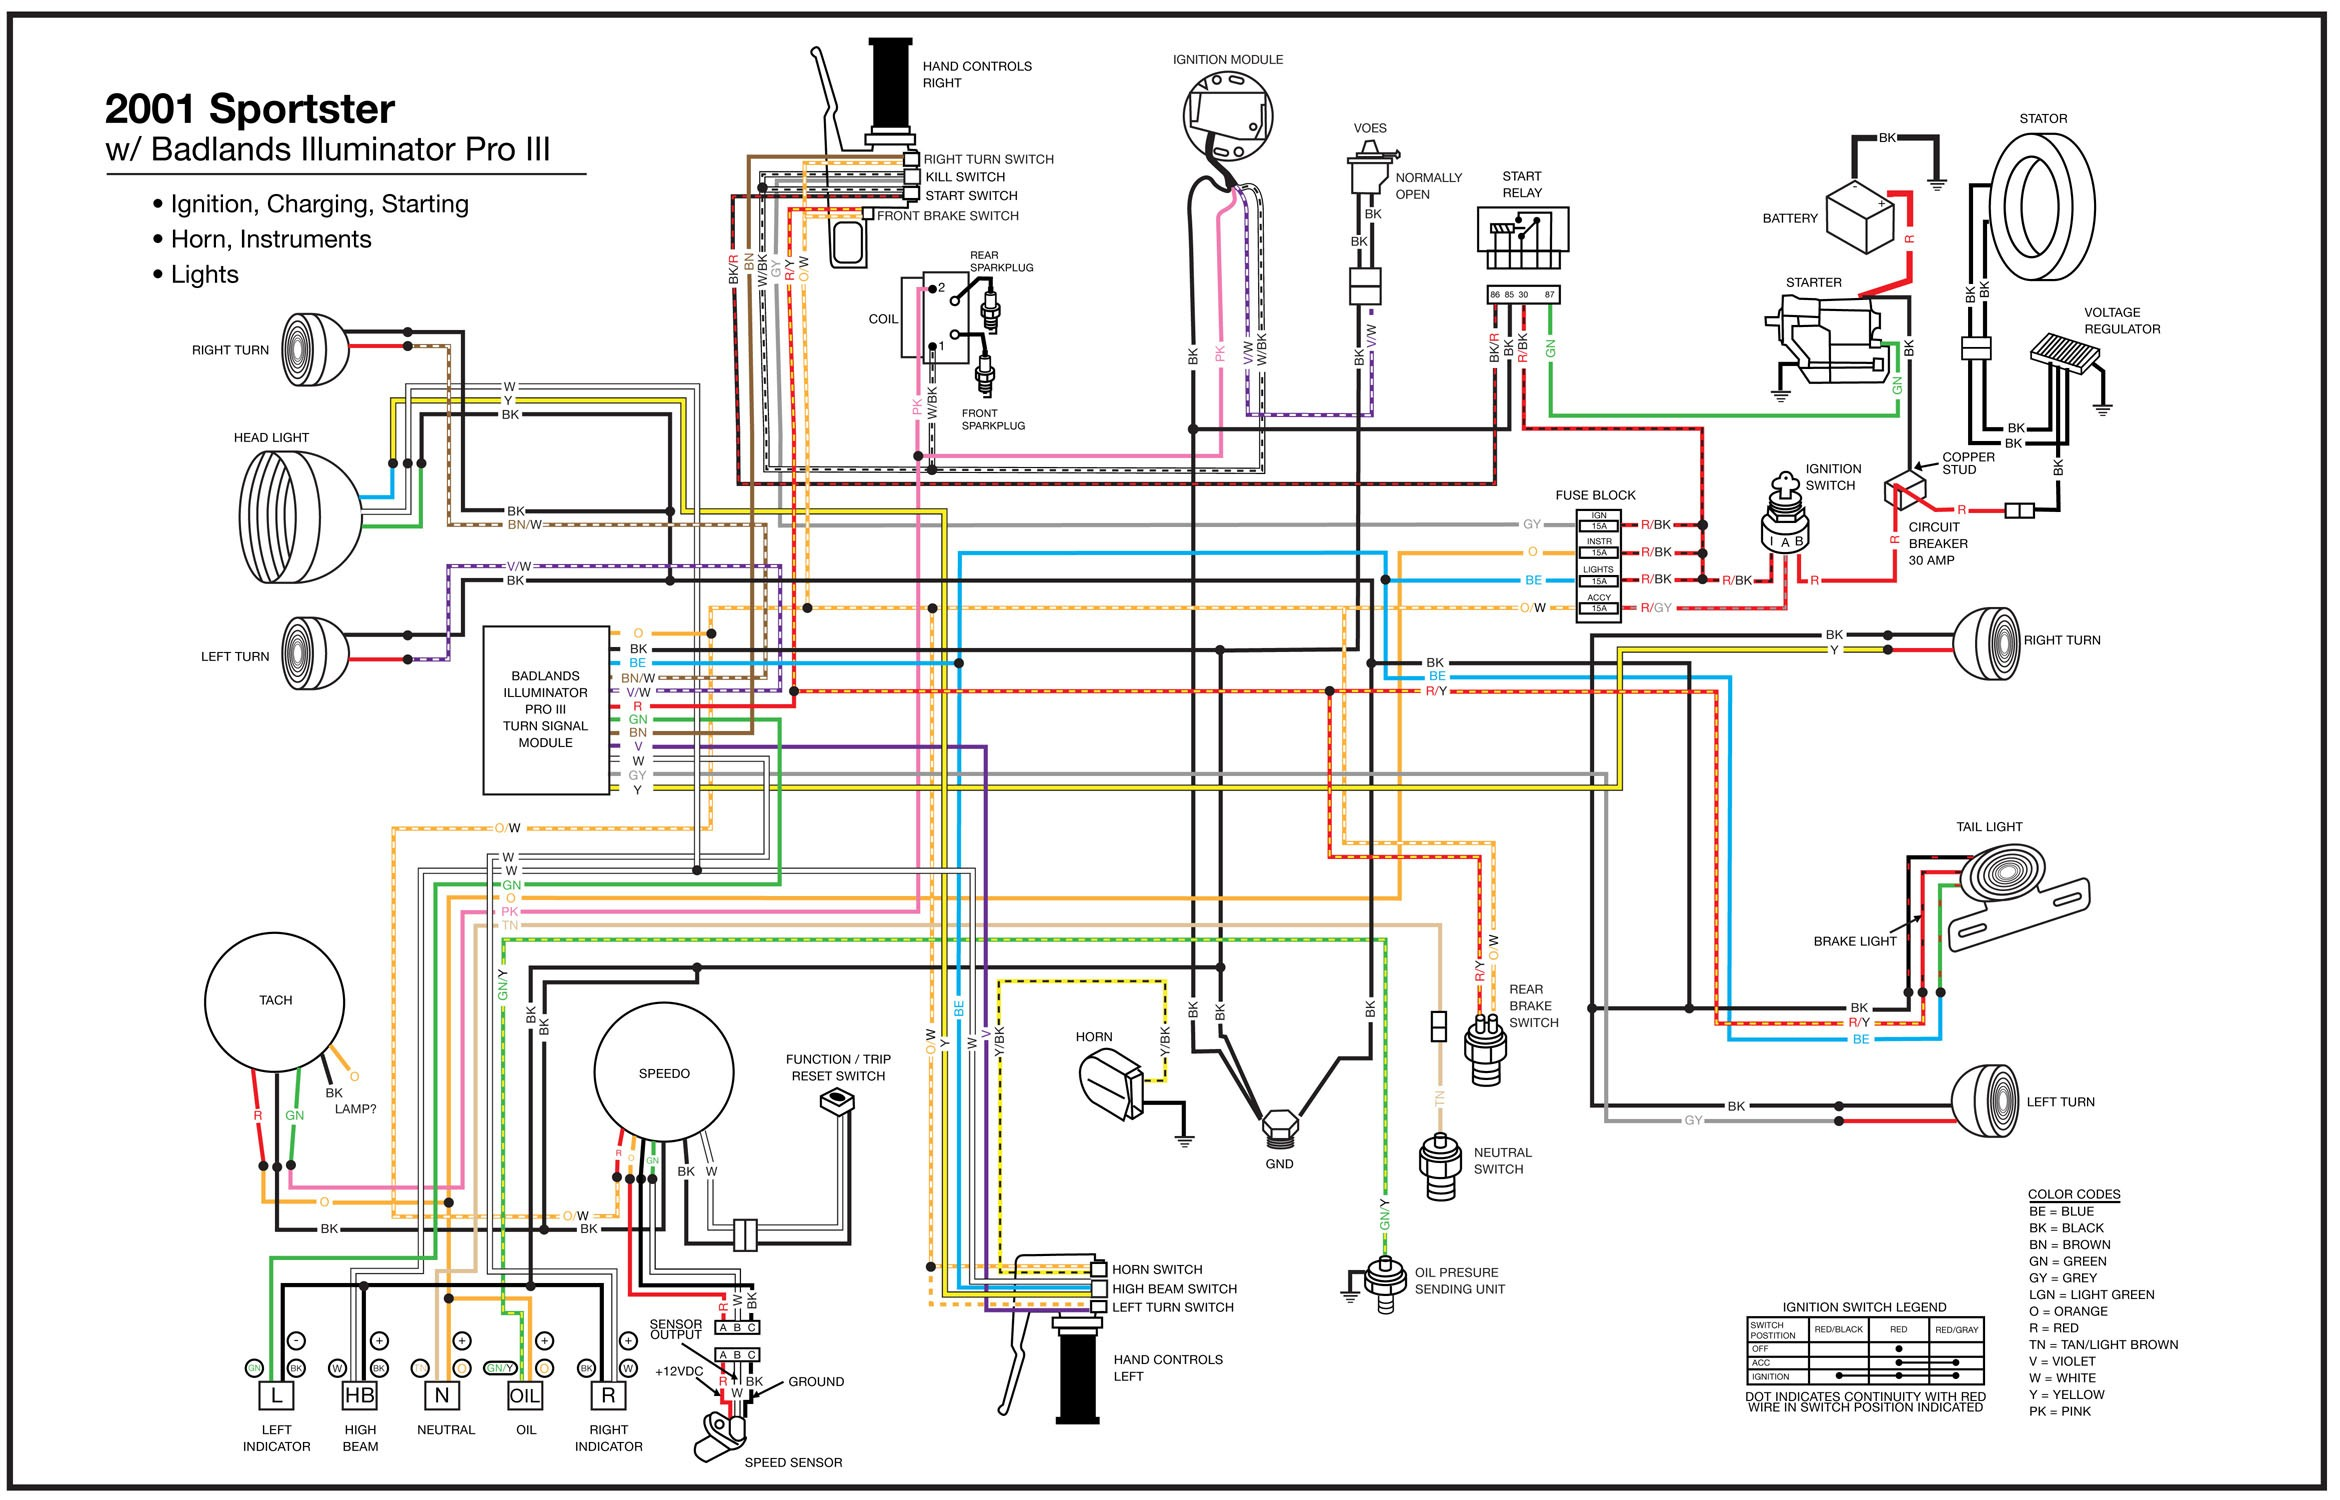 wire diagram softail - goodman replacement furnace motor wiring diagram for wiring  diagram schematics  wiring diagram schematics